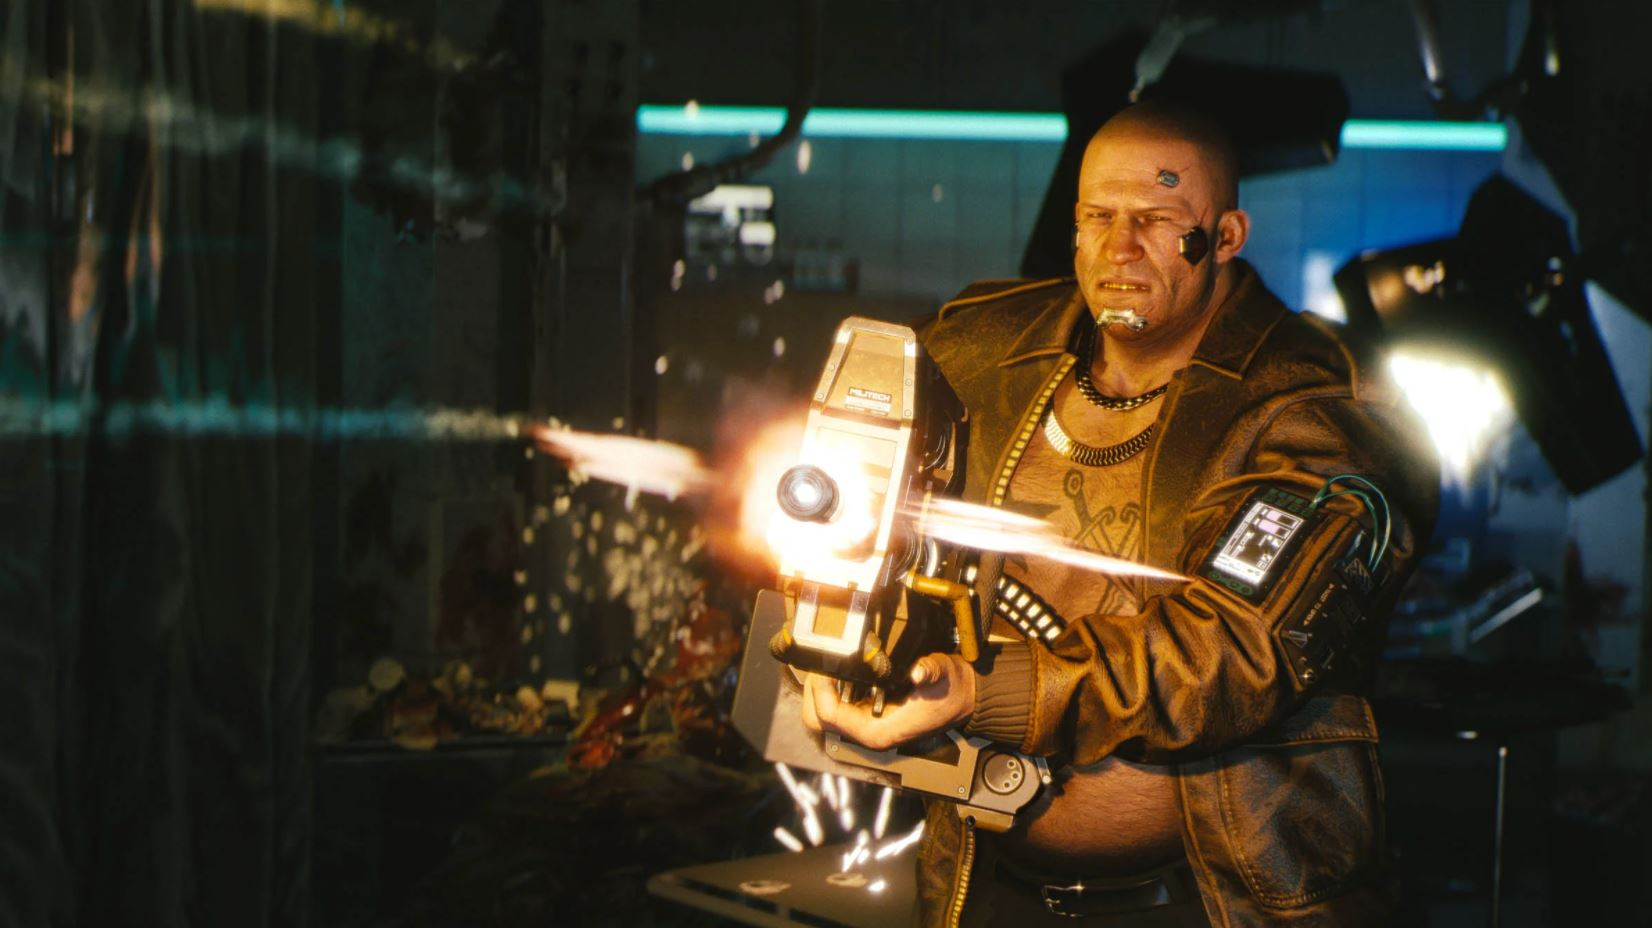 cyberpunk-2077-update-1-05-patch-notes-continue-to-fix-issues-and-bugs-with-the-game